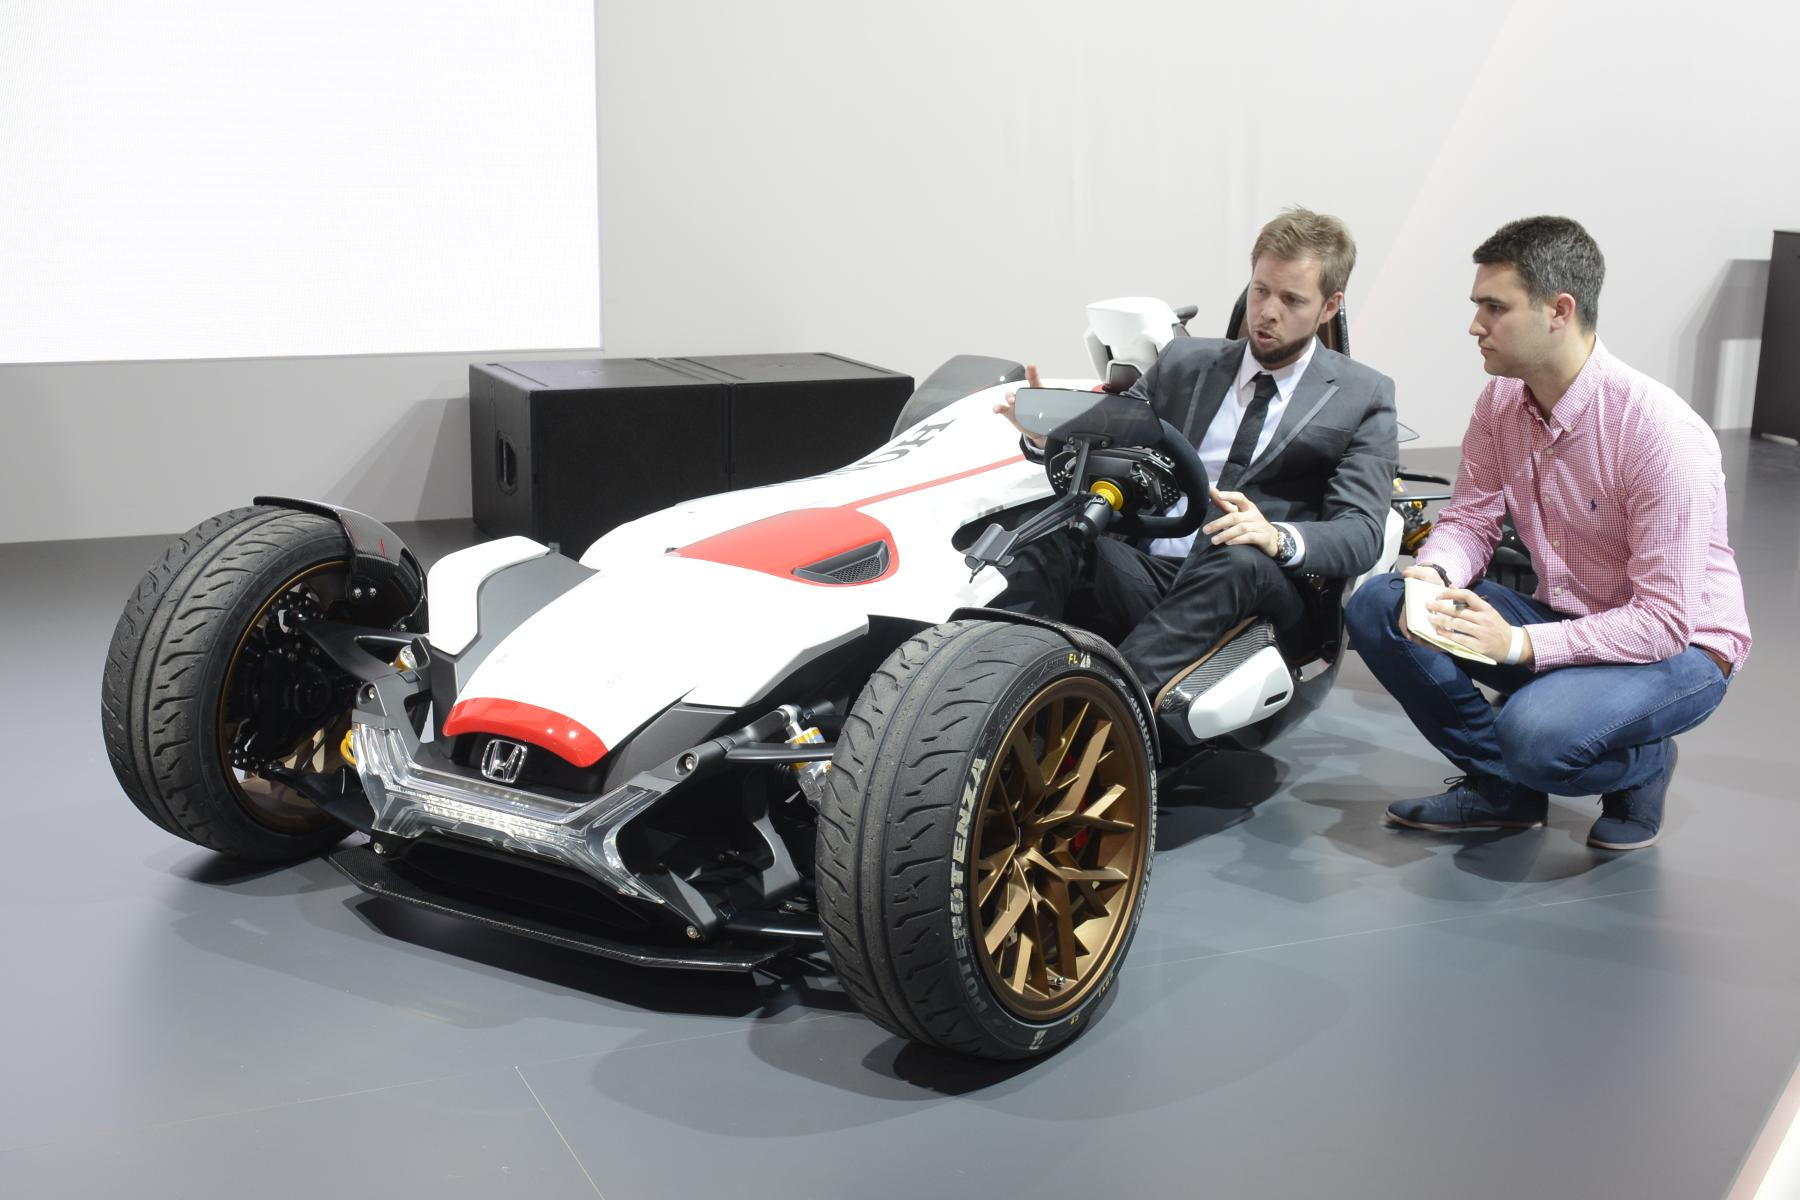 honda 2 4 concept revealed possible ktm x bow rival performancedrive. Black Bedroom Furniture Sets. Home Design Ideas